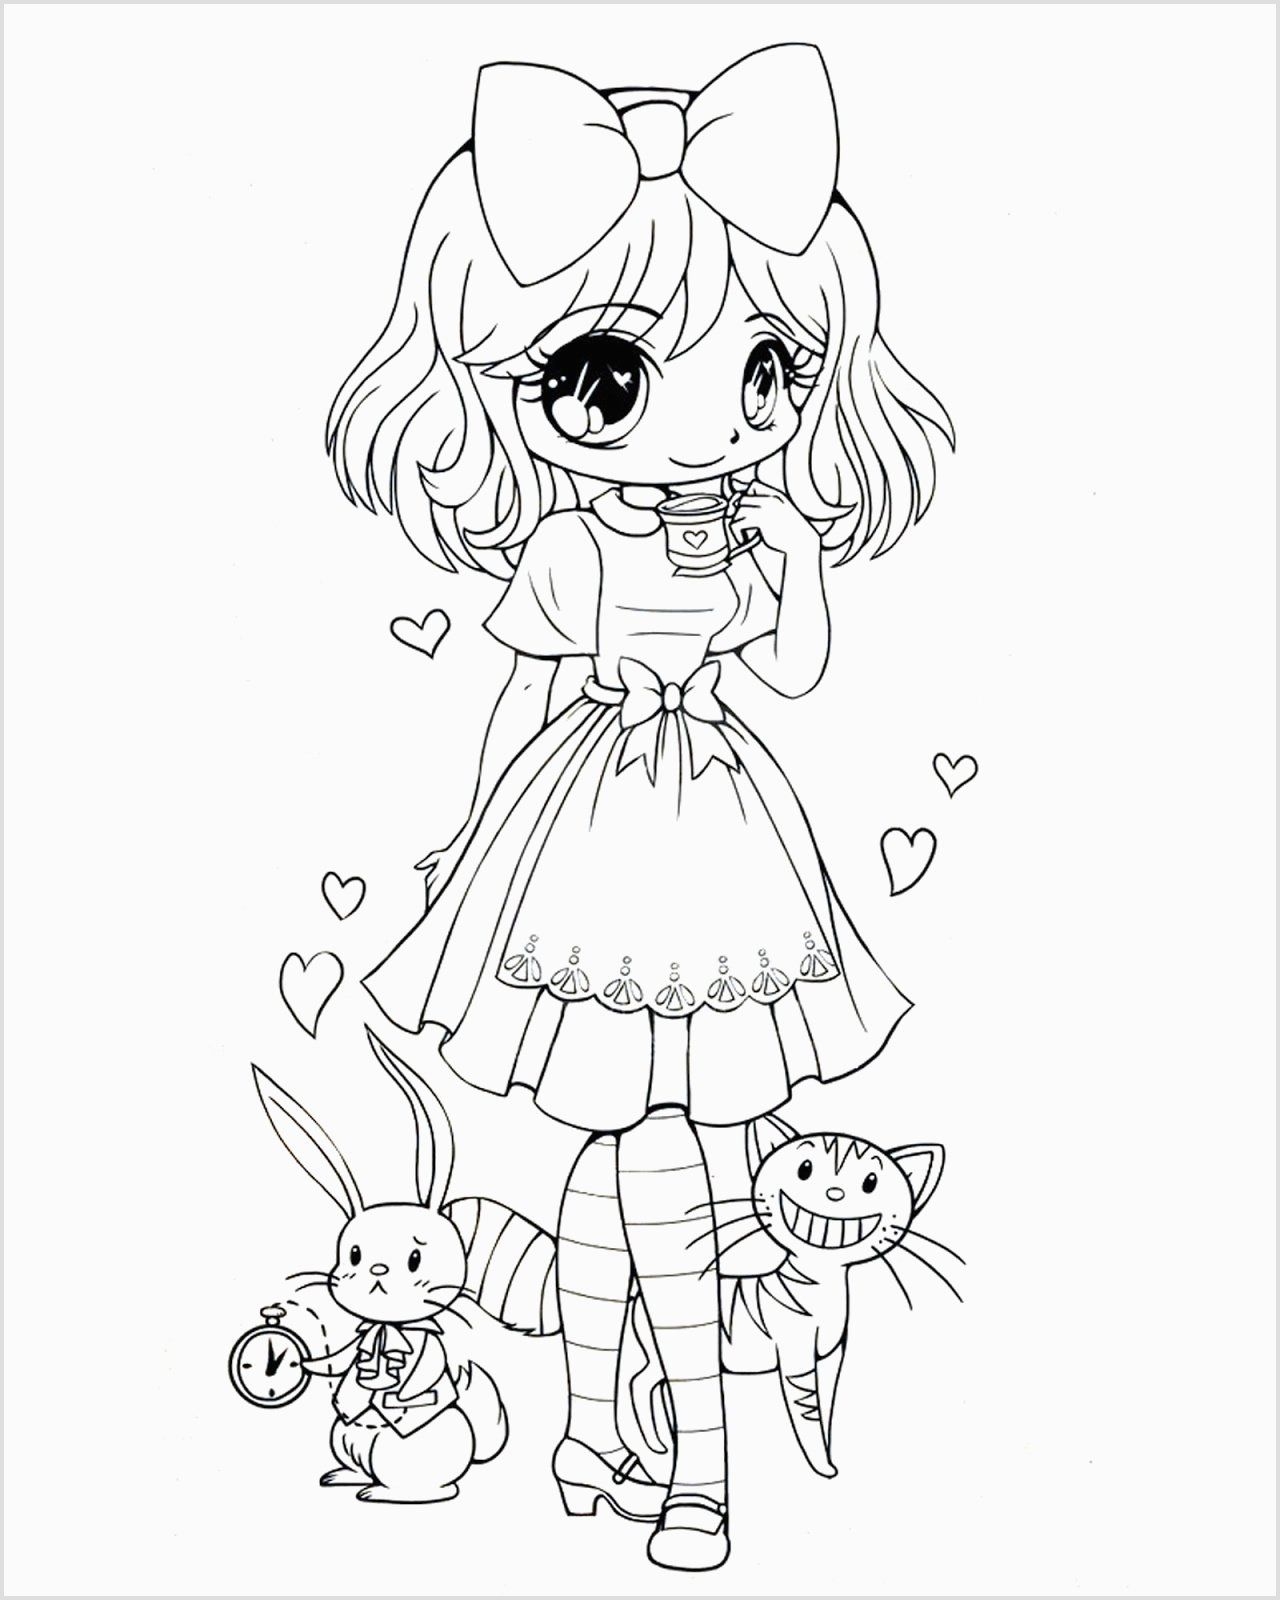 Special A Anime Coloring Pages Printable New Printable Fraction Games Ks2 Super Mar In 2020 Disney Princess Coloring Pages Princess Coloring Pages Chibi Coloring Pages